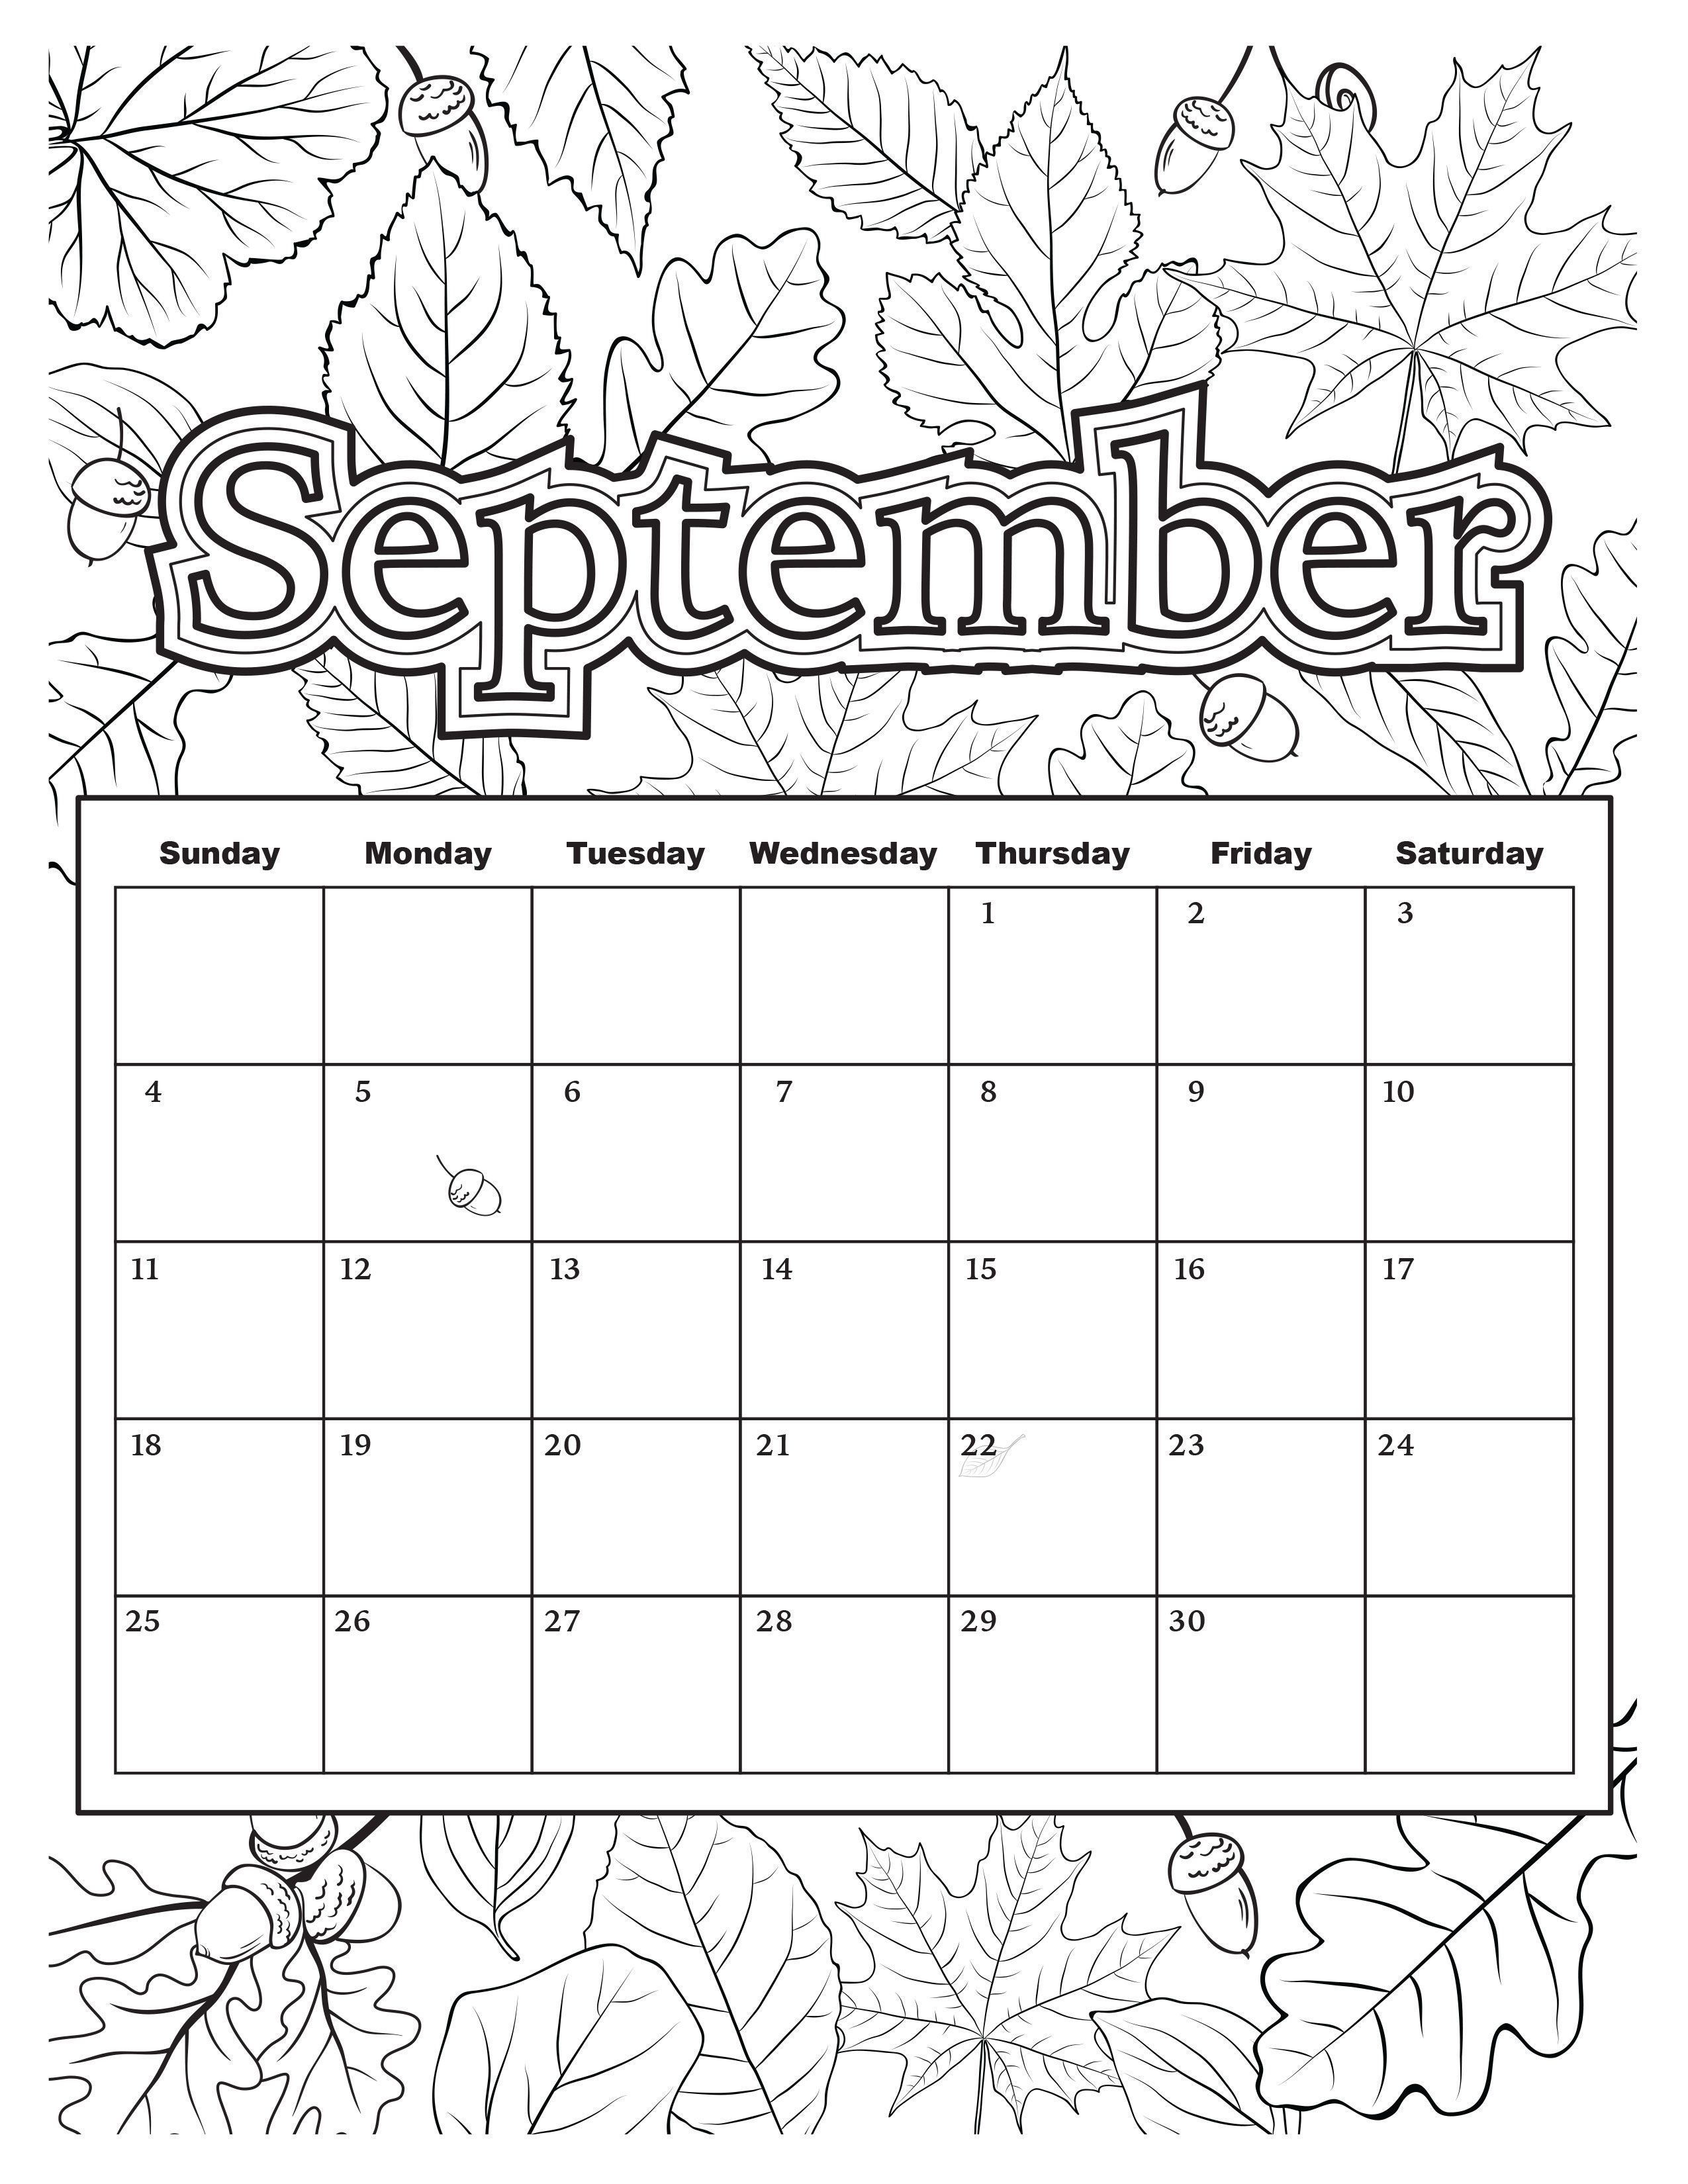 mes coloring pages - photo#35